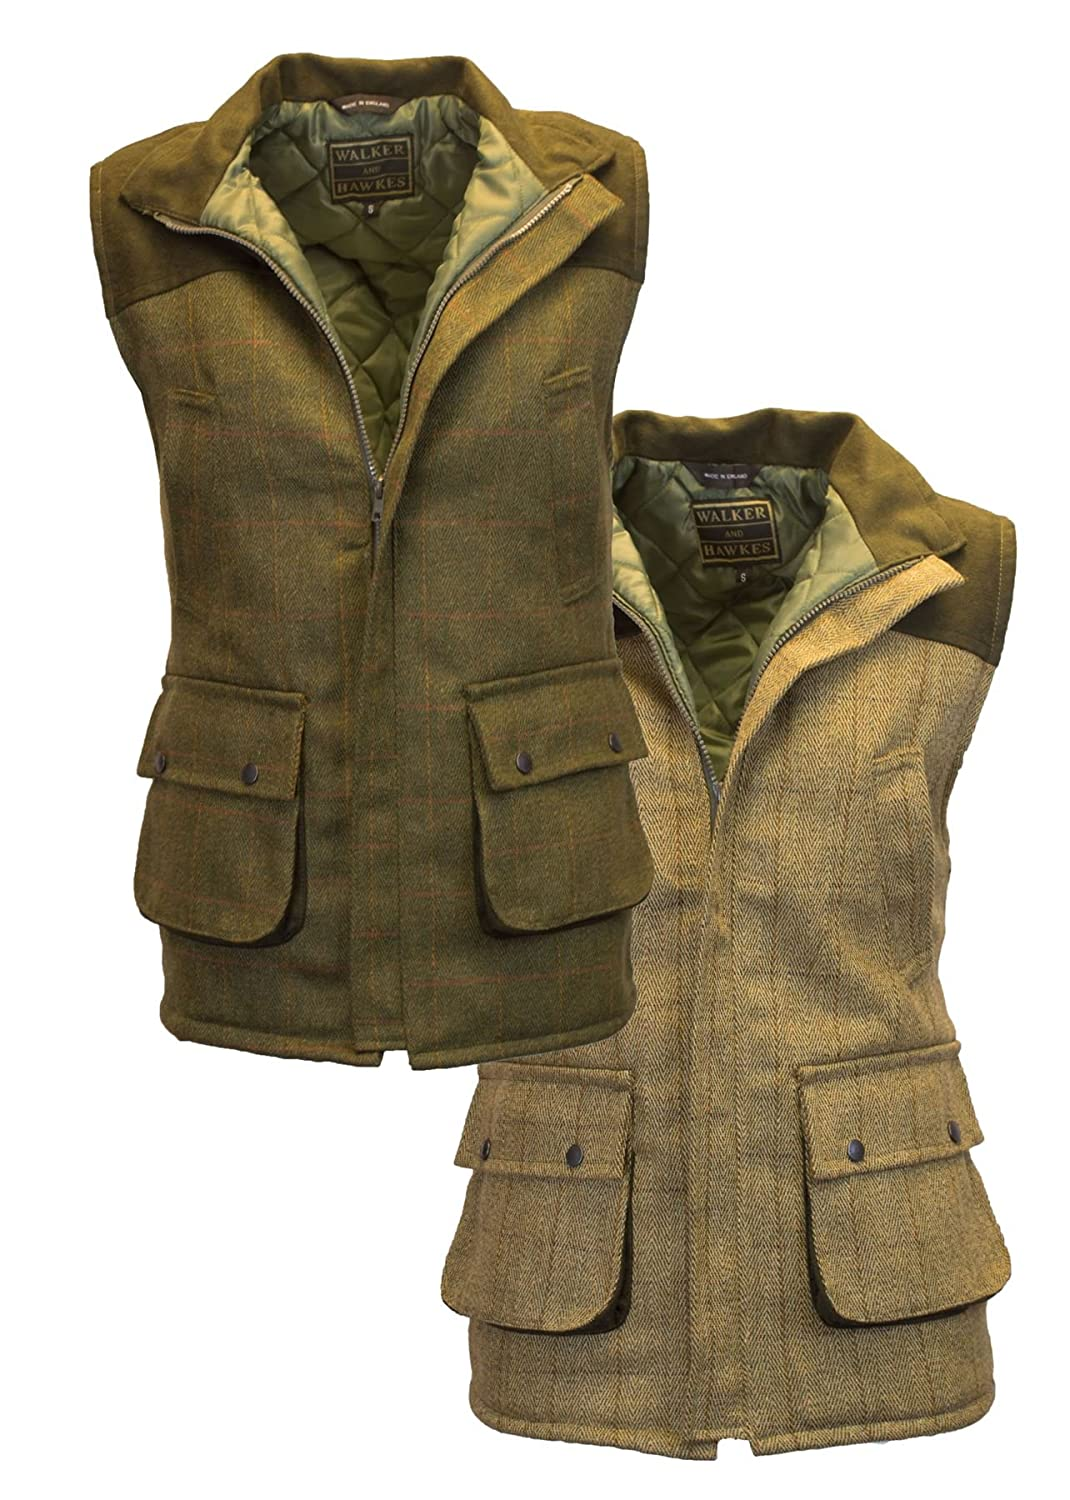 24324359ec7 Walker and Hawkes Men s Tweed Shooting Waistcoat Gilet with Shoulder Patch  at Amazon Men s Clothing store